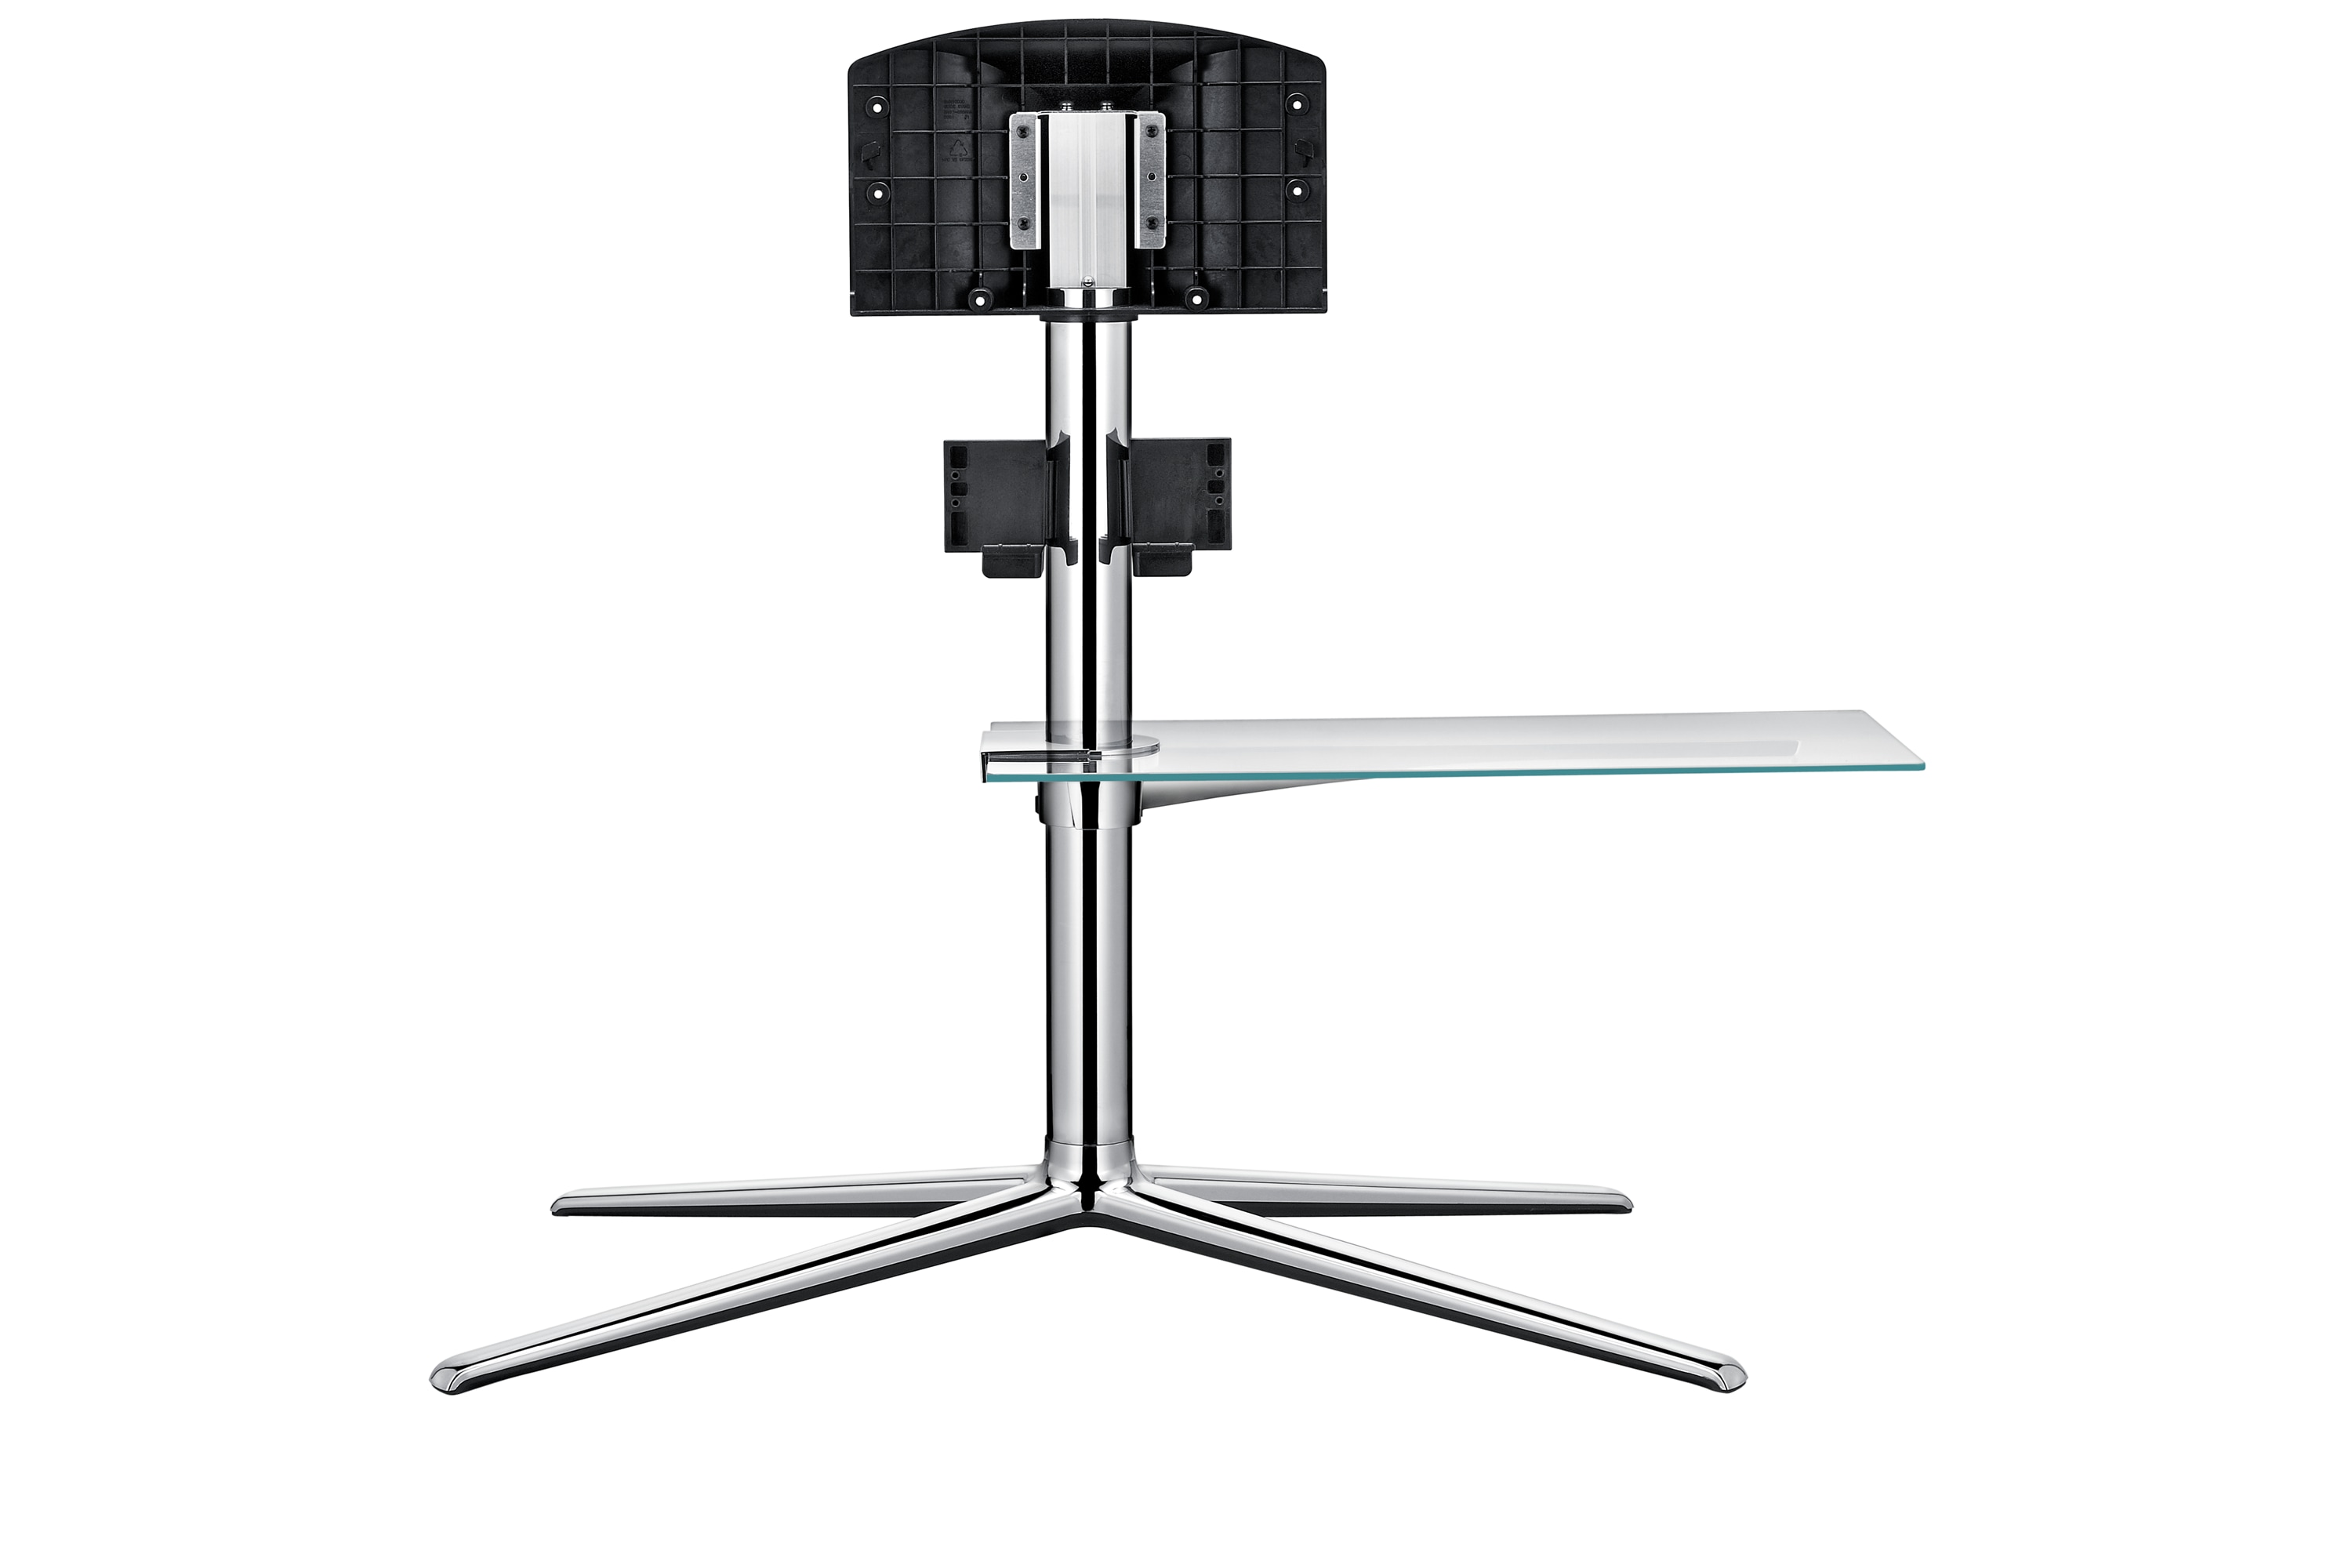 smn1000d led tv floor stand samsung ireland. Black Bedroom Furniture Sets. Home Design Ideas